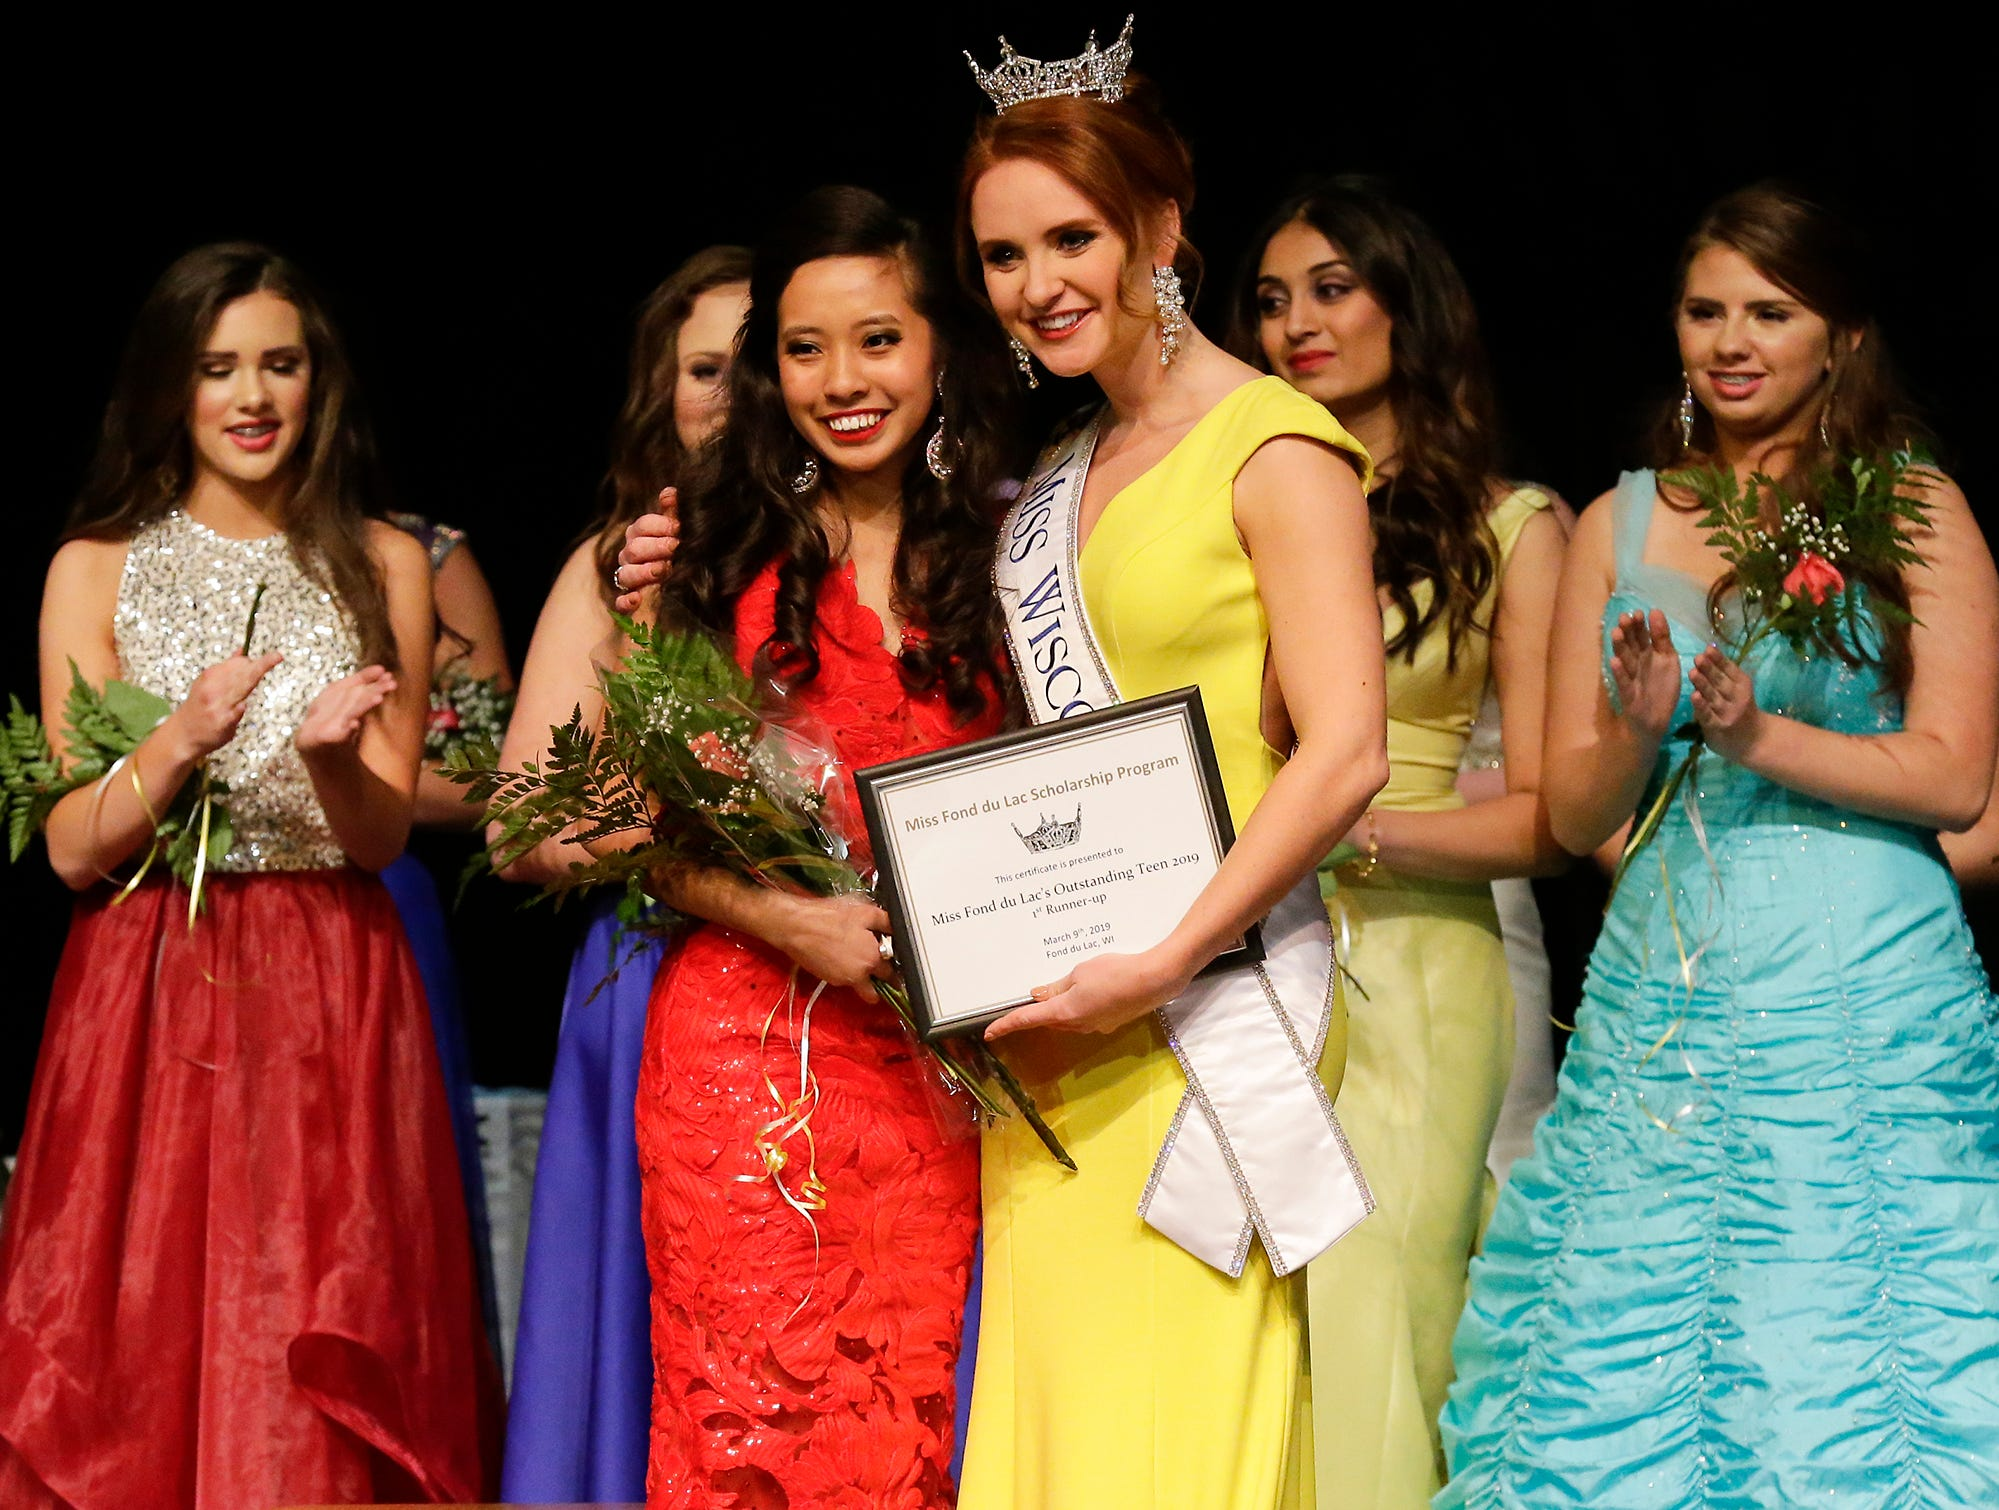 Liberty Mugerauer is awarded Miss Fond du Lac's Outstanding Teen 2019 first runner up by 2018's Miss Wisconsin Tianna Vanderhei during the Miss Fond du Lac, Miss Wisconsin Central and Miss Fond du Lac's Outstanding Teen 2019 scholarship competitions Saturday, March 9, 2019 at the Goodrich Little Theater in Fond du Lac, Wis. Doug Raflik/USA TODAY NETWORK-Wisconsin